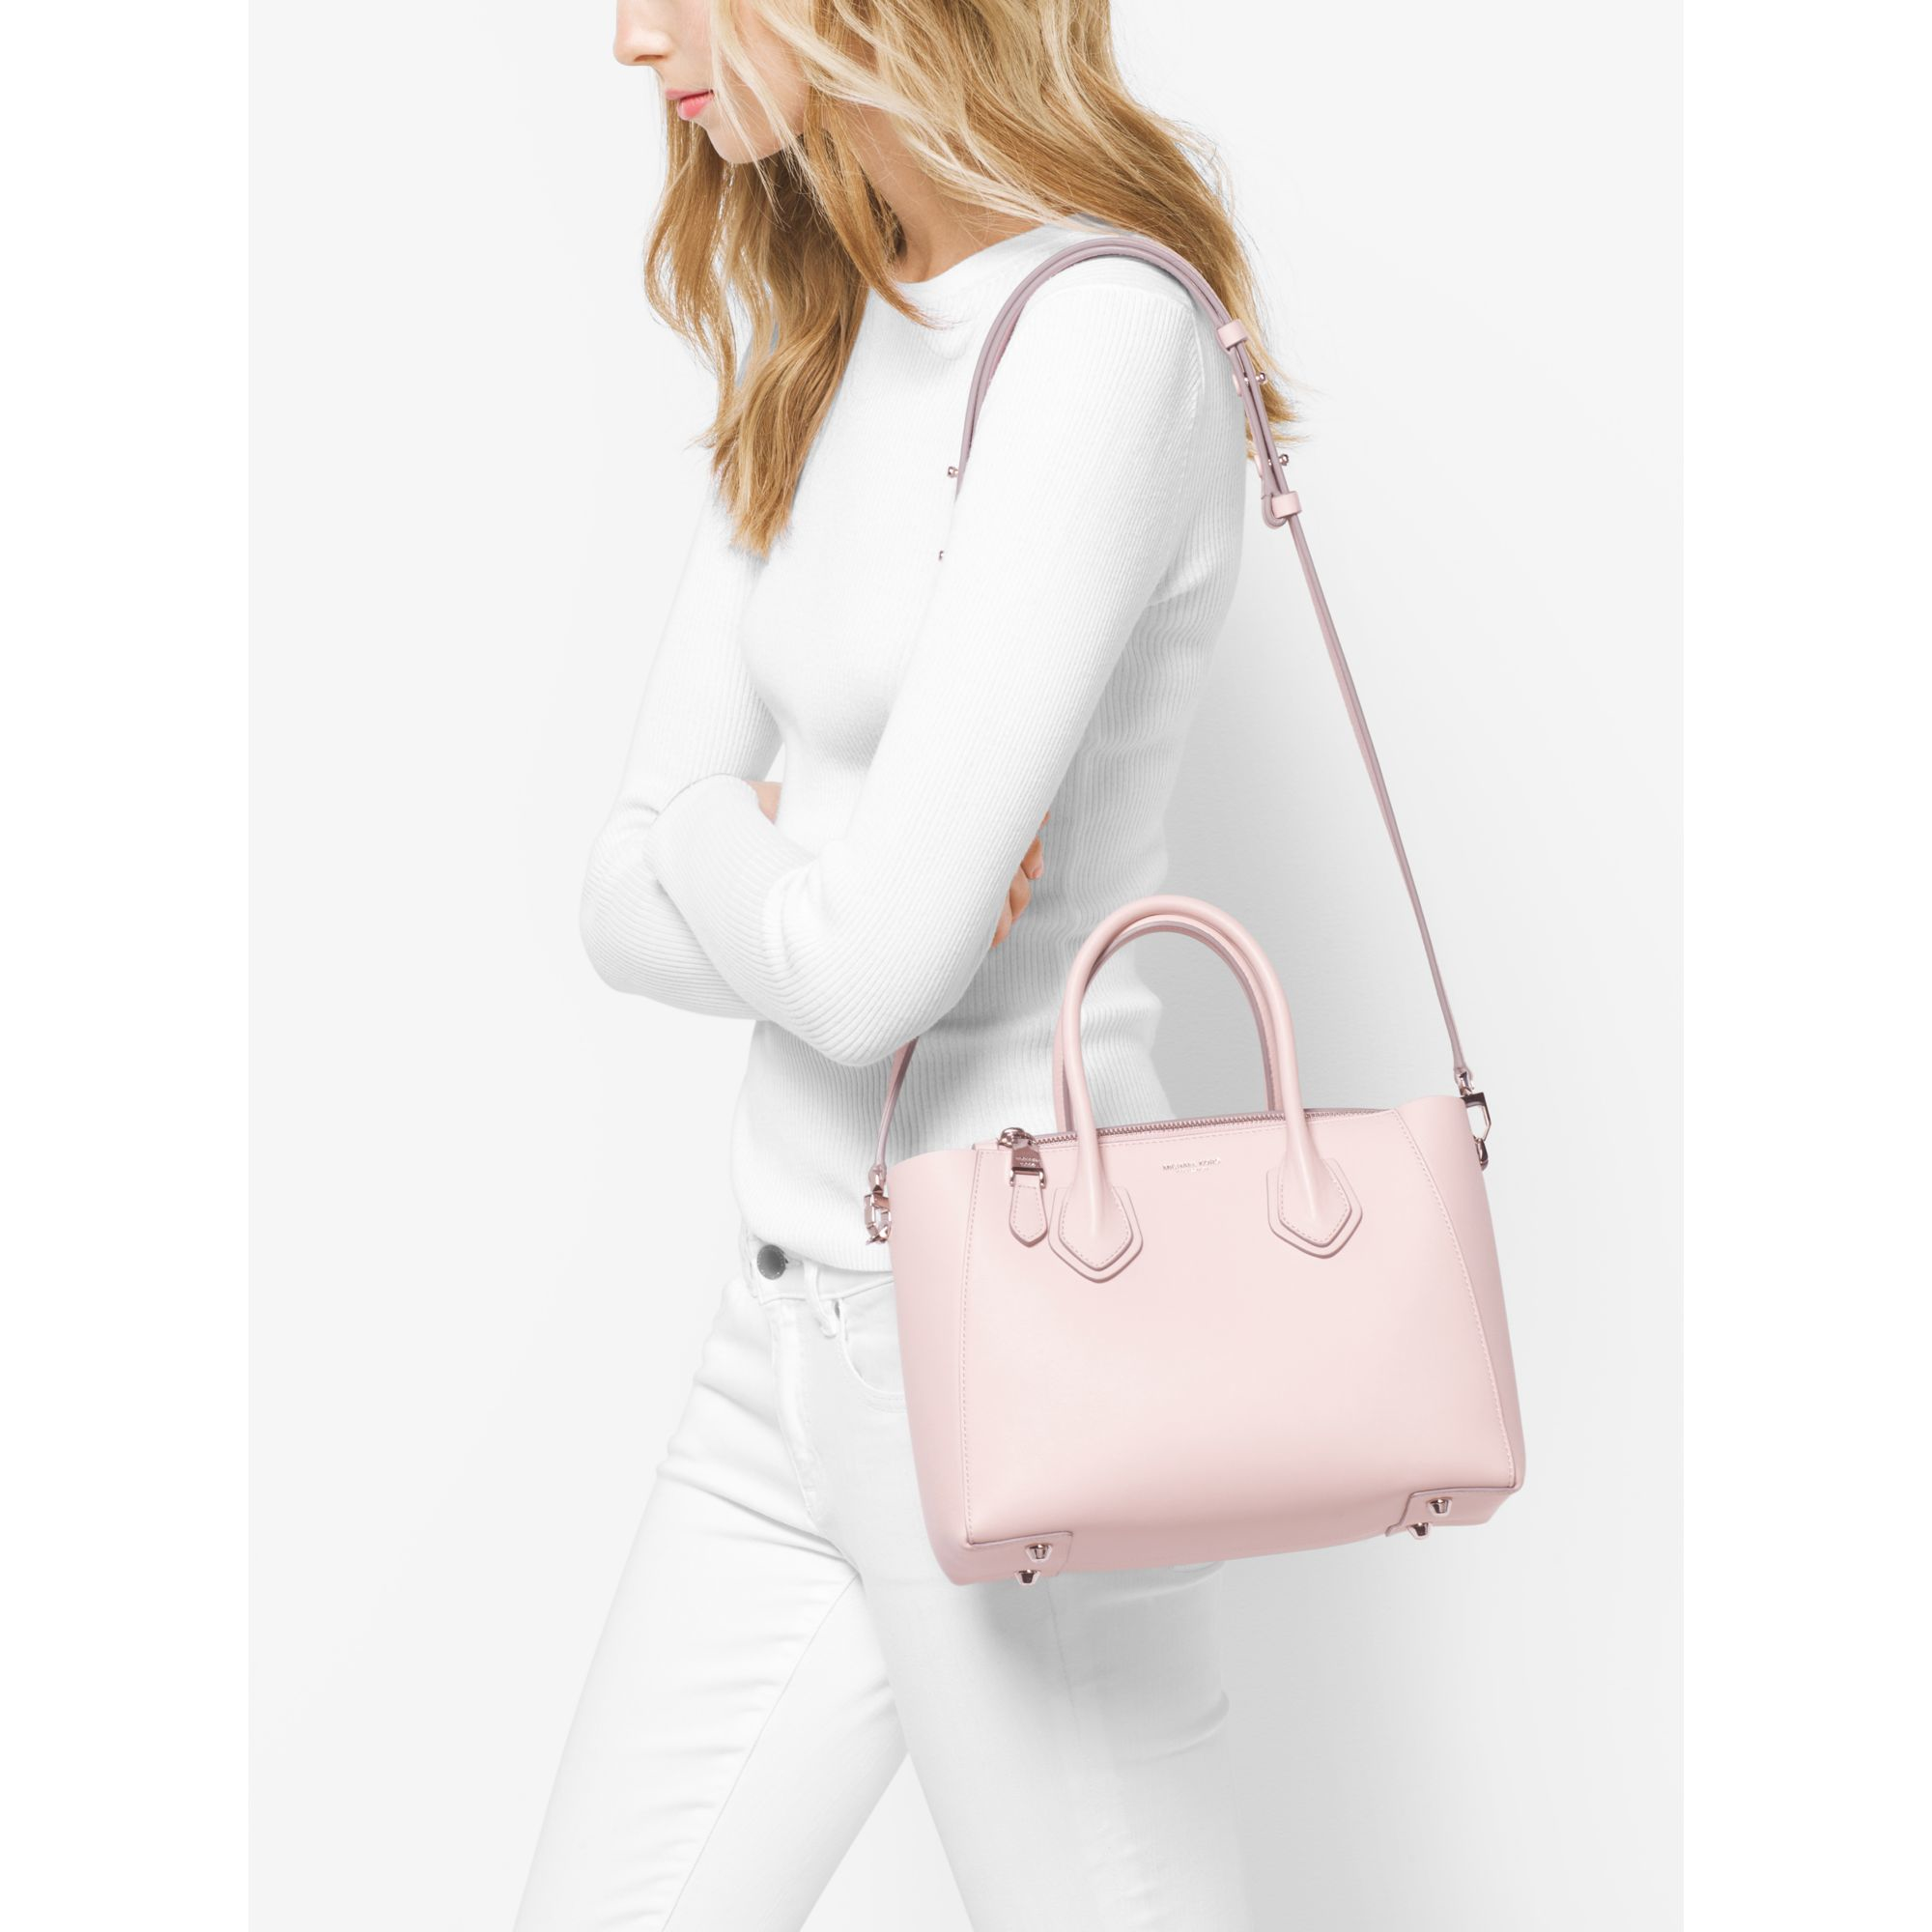 6a6bf64704ca Lyst - Michael Kors Helena Small French Calf Leather Satchel in Pink